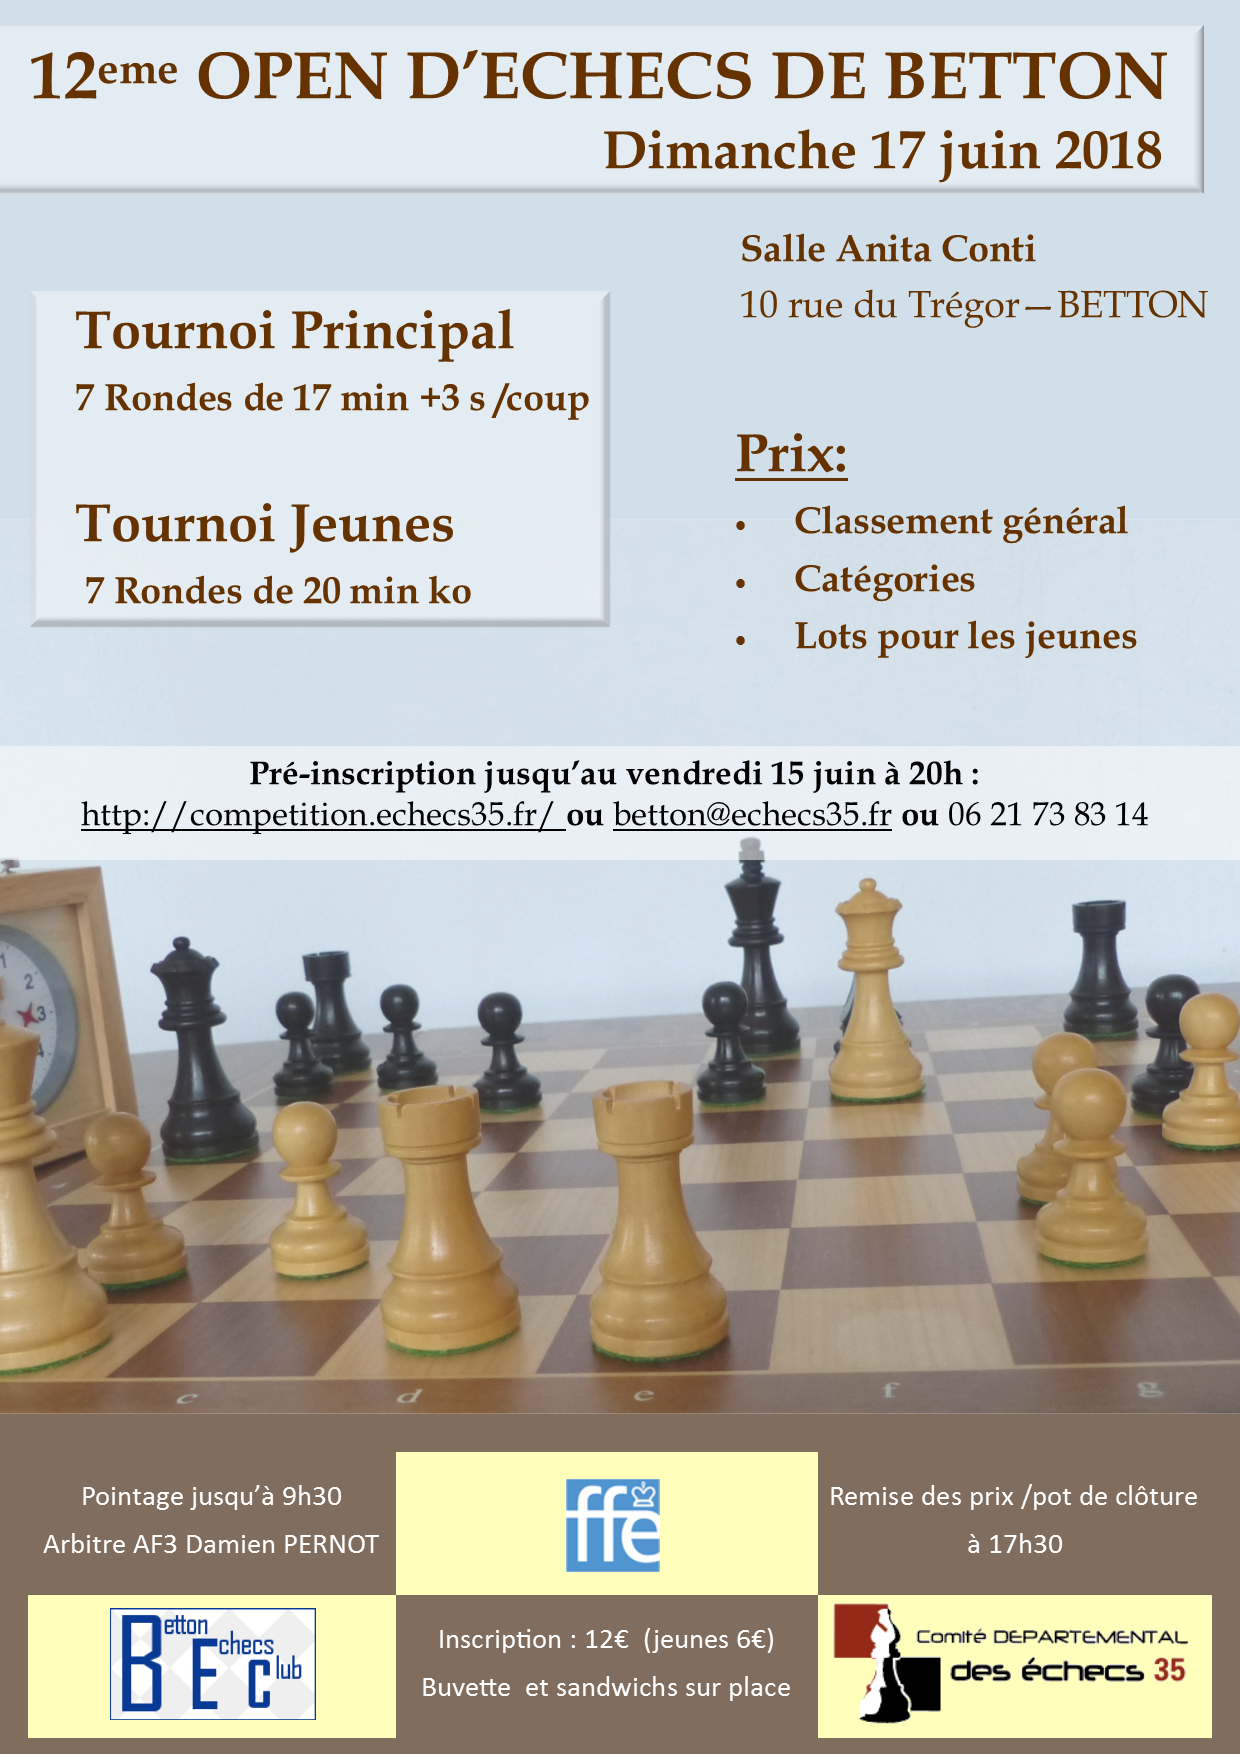 Affiche de l'Open de rapides de betton 2018